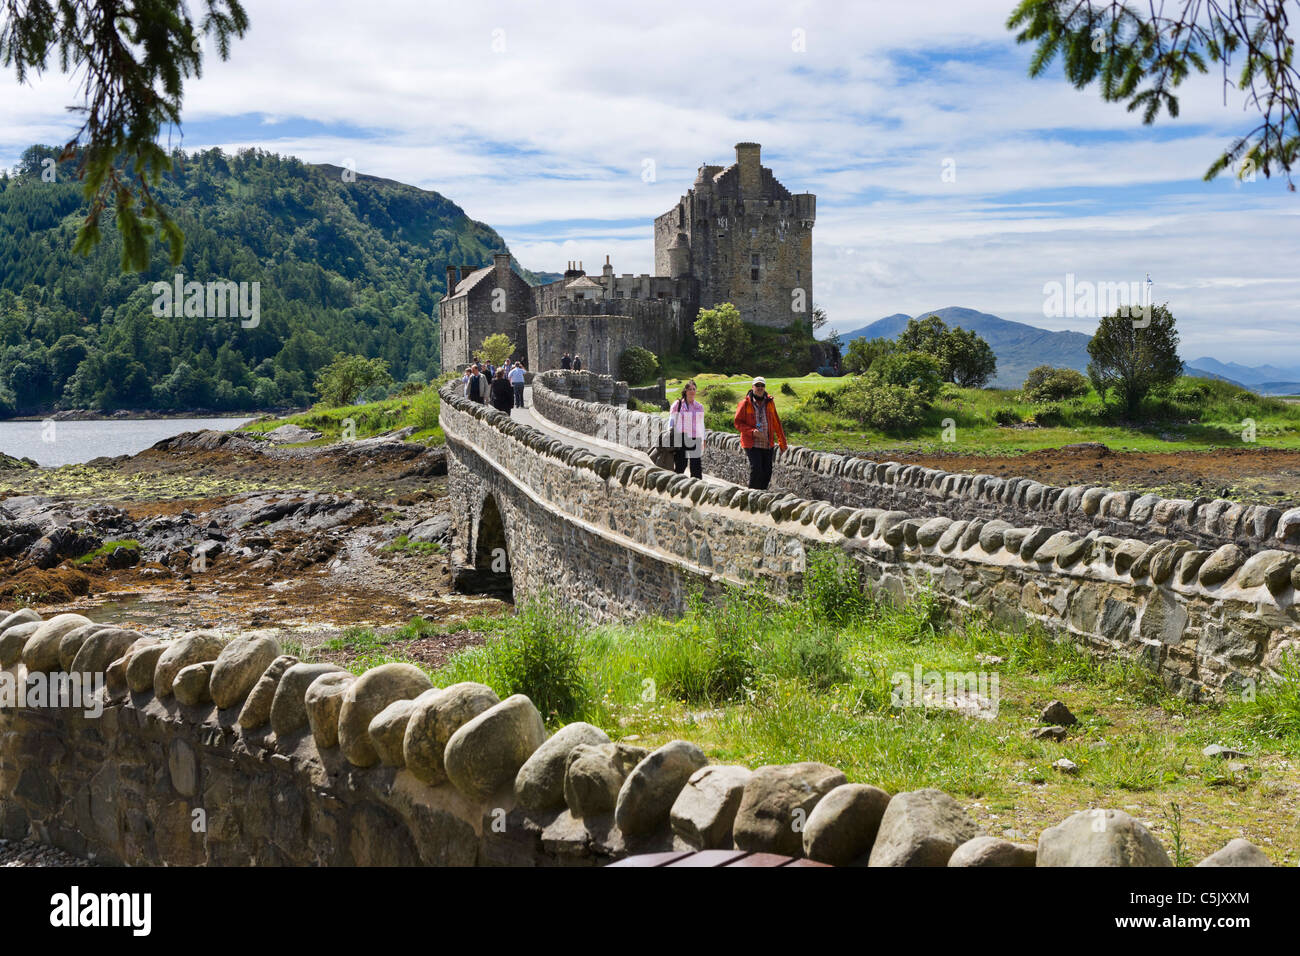 Tourists crossing the bridge to Eilean Donan Castle, Loch Duich, Highland, Scotland, UK - Stock Image